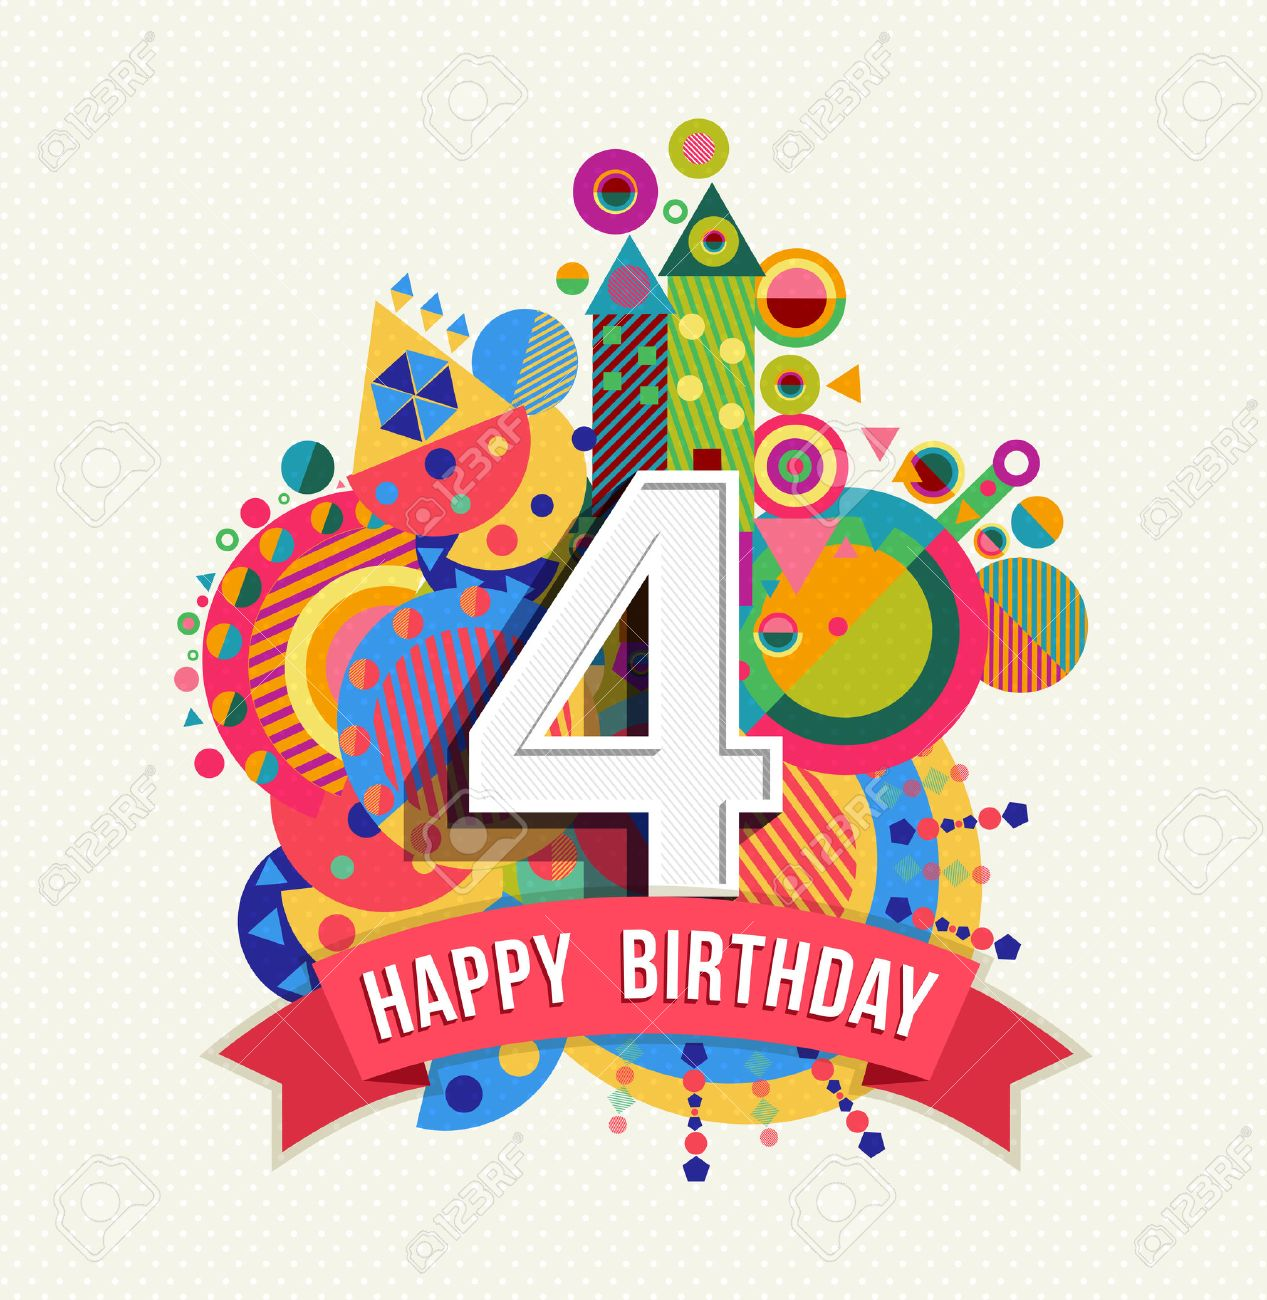 Happy Birthday four 4 year, fun design with number, text label and colorful geometry element. Ideal for poster or greeting card. EPS10 vector. - 50199032